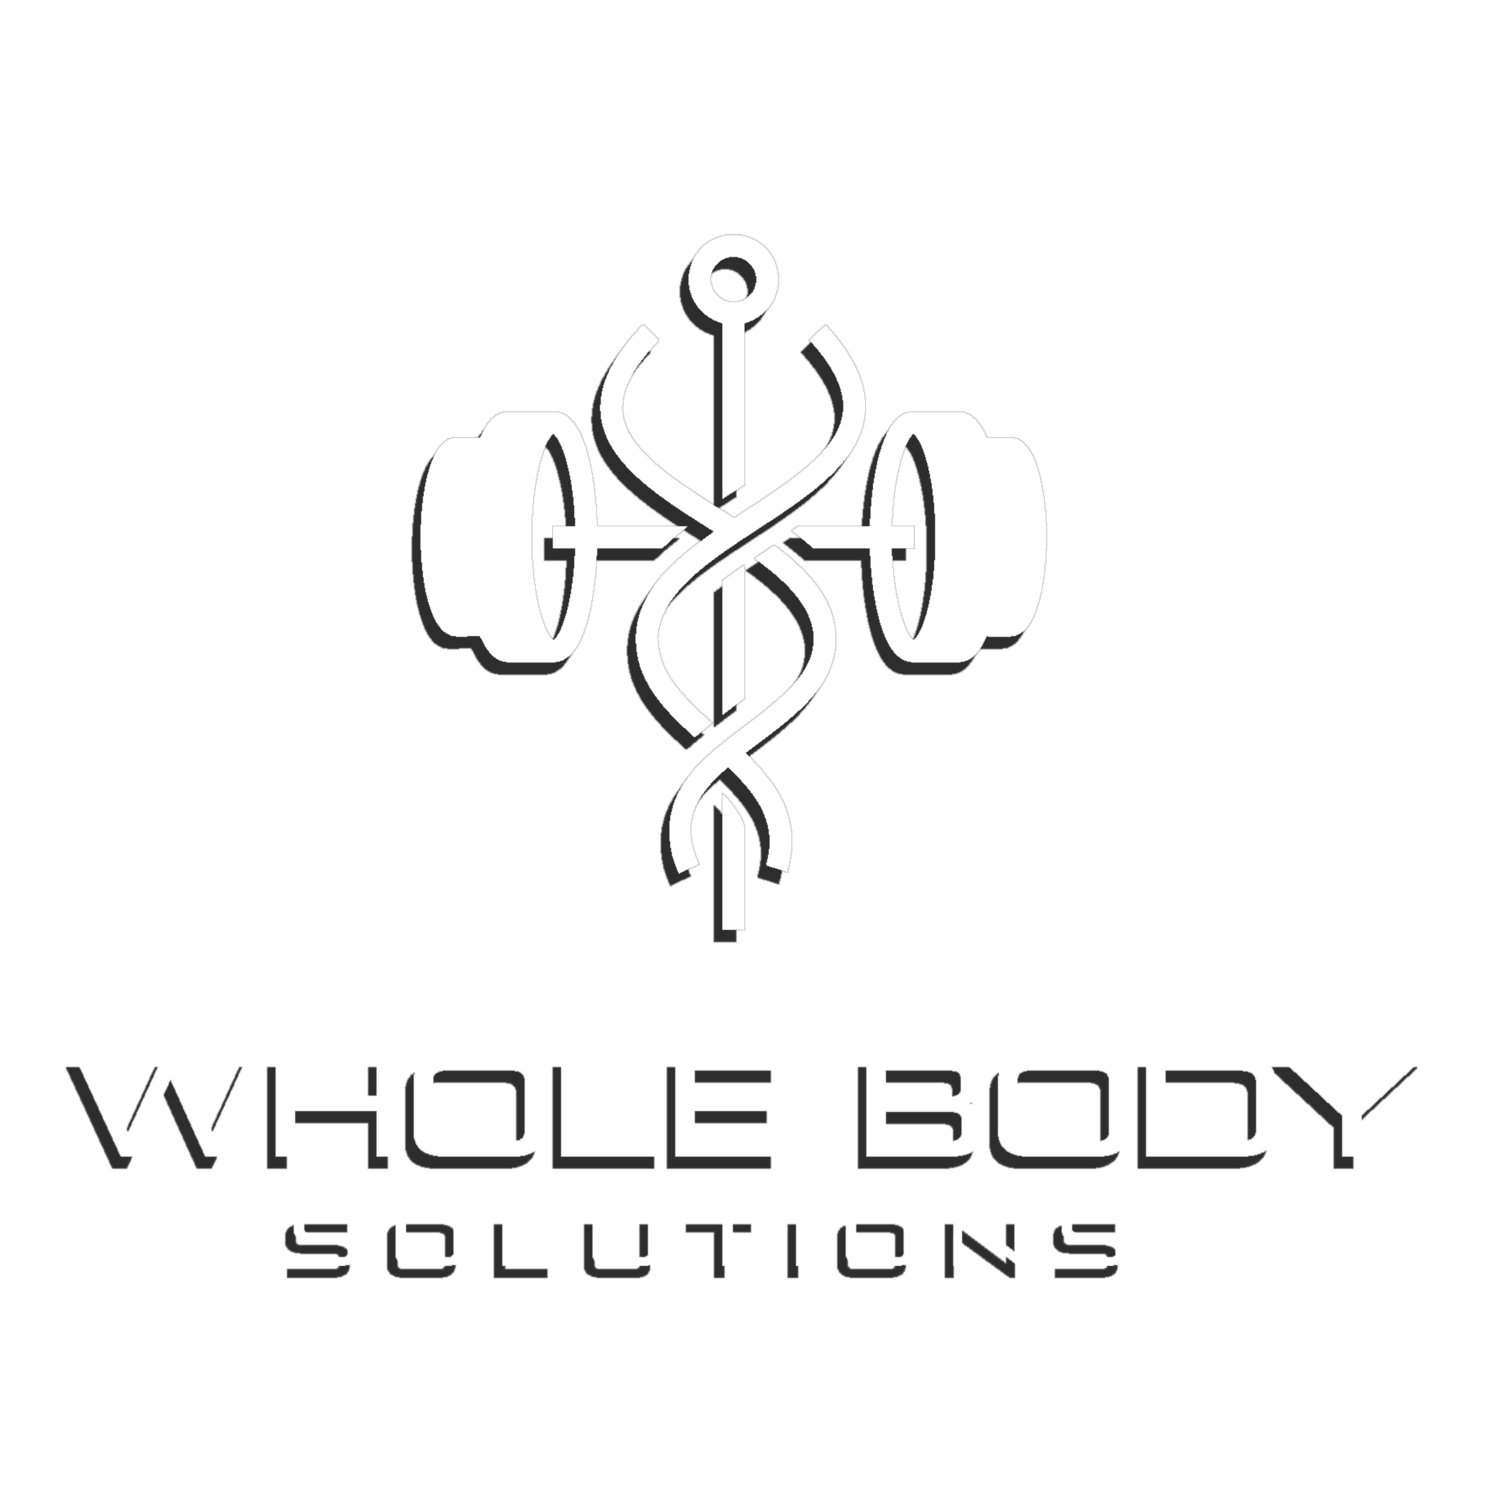 Whole Body Solutions